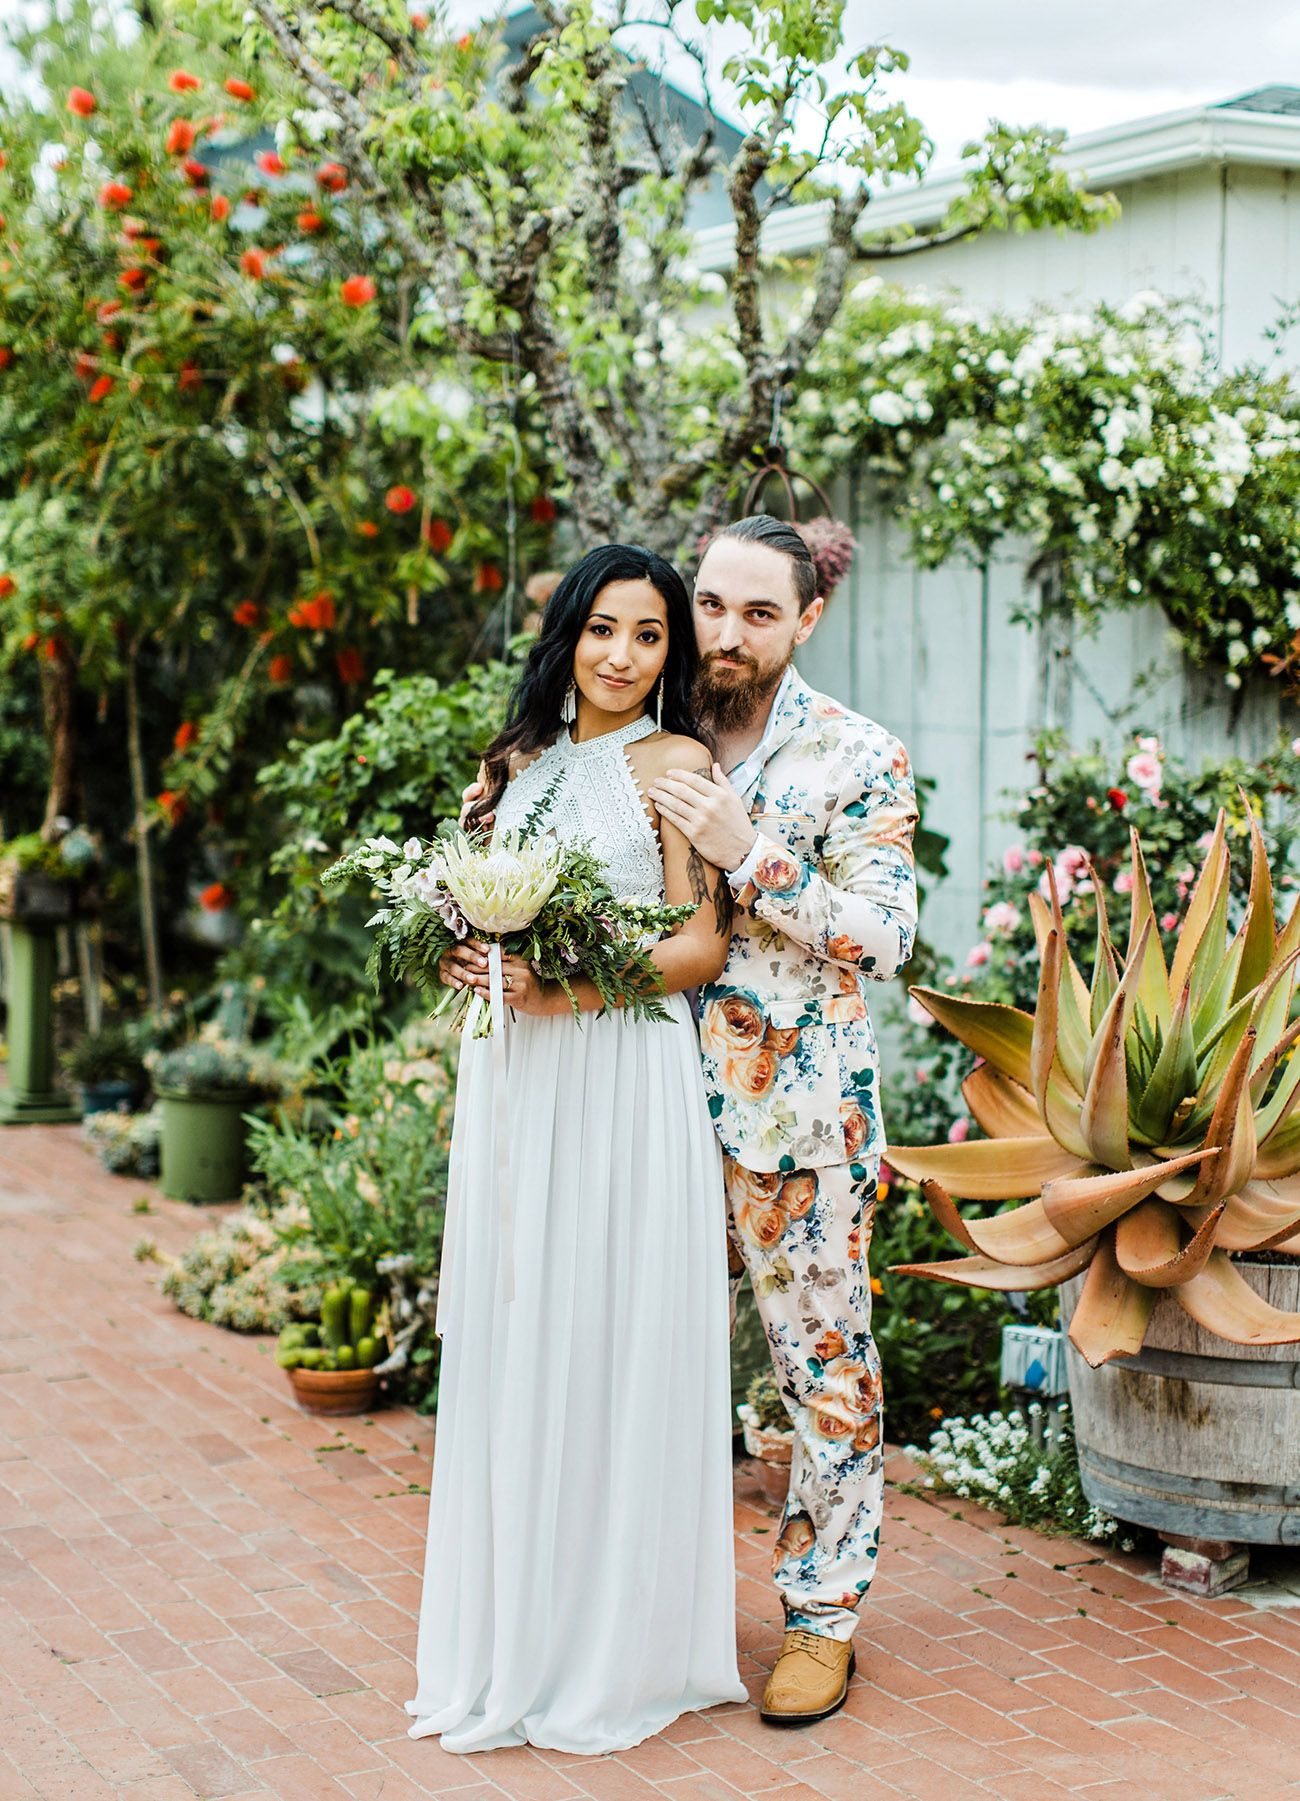 On Trend Grooms Rocking Fl Suits Find Your Fave Green Wedding Shoes Stylish Groom Suit And Tux Options For The Fashionable Hipster